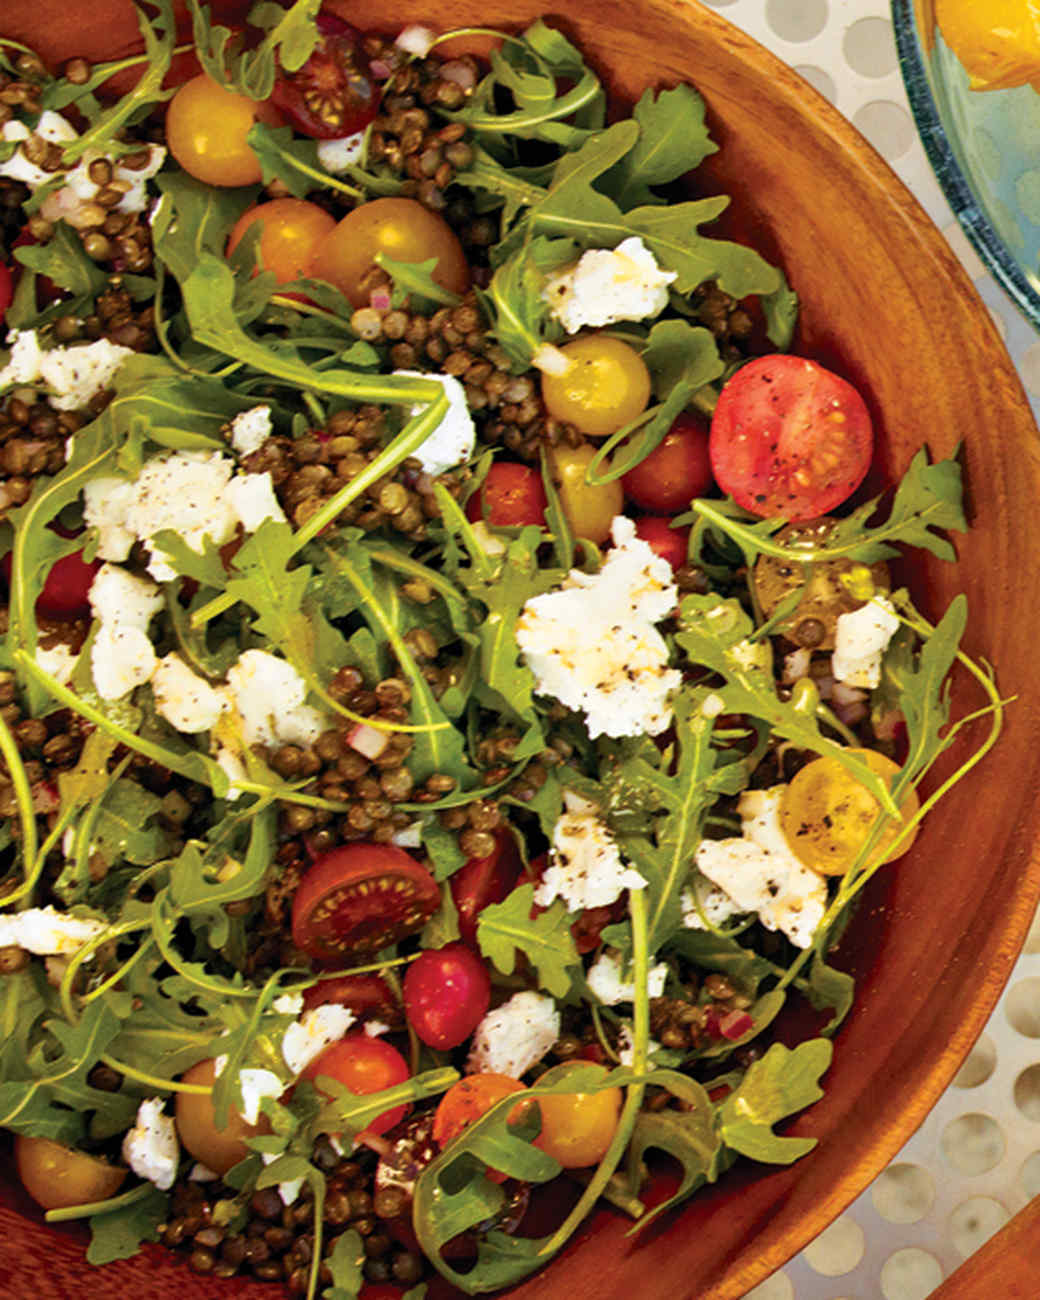 Arugula and Lentil Salad with Goat Cheese